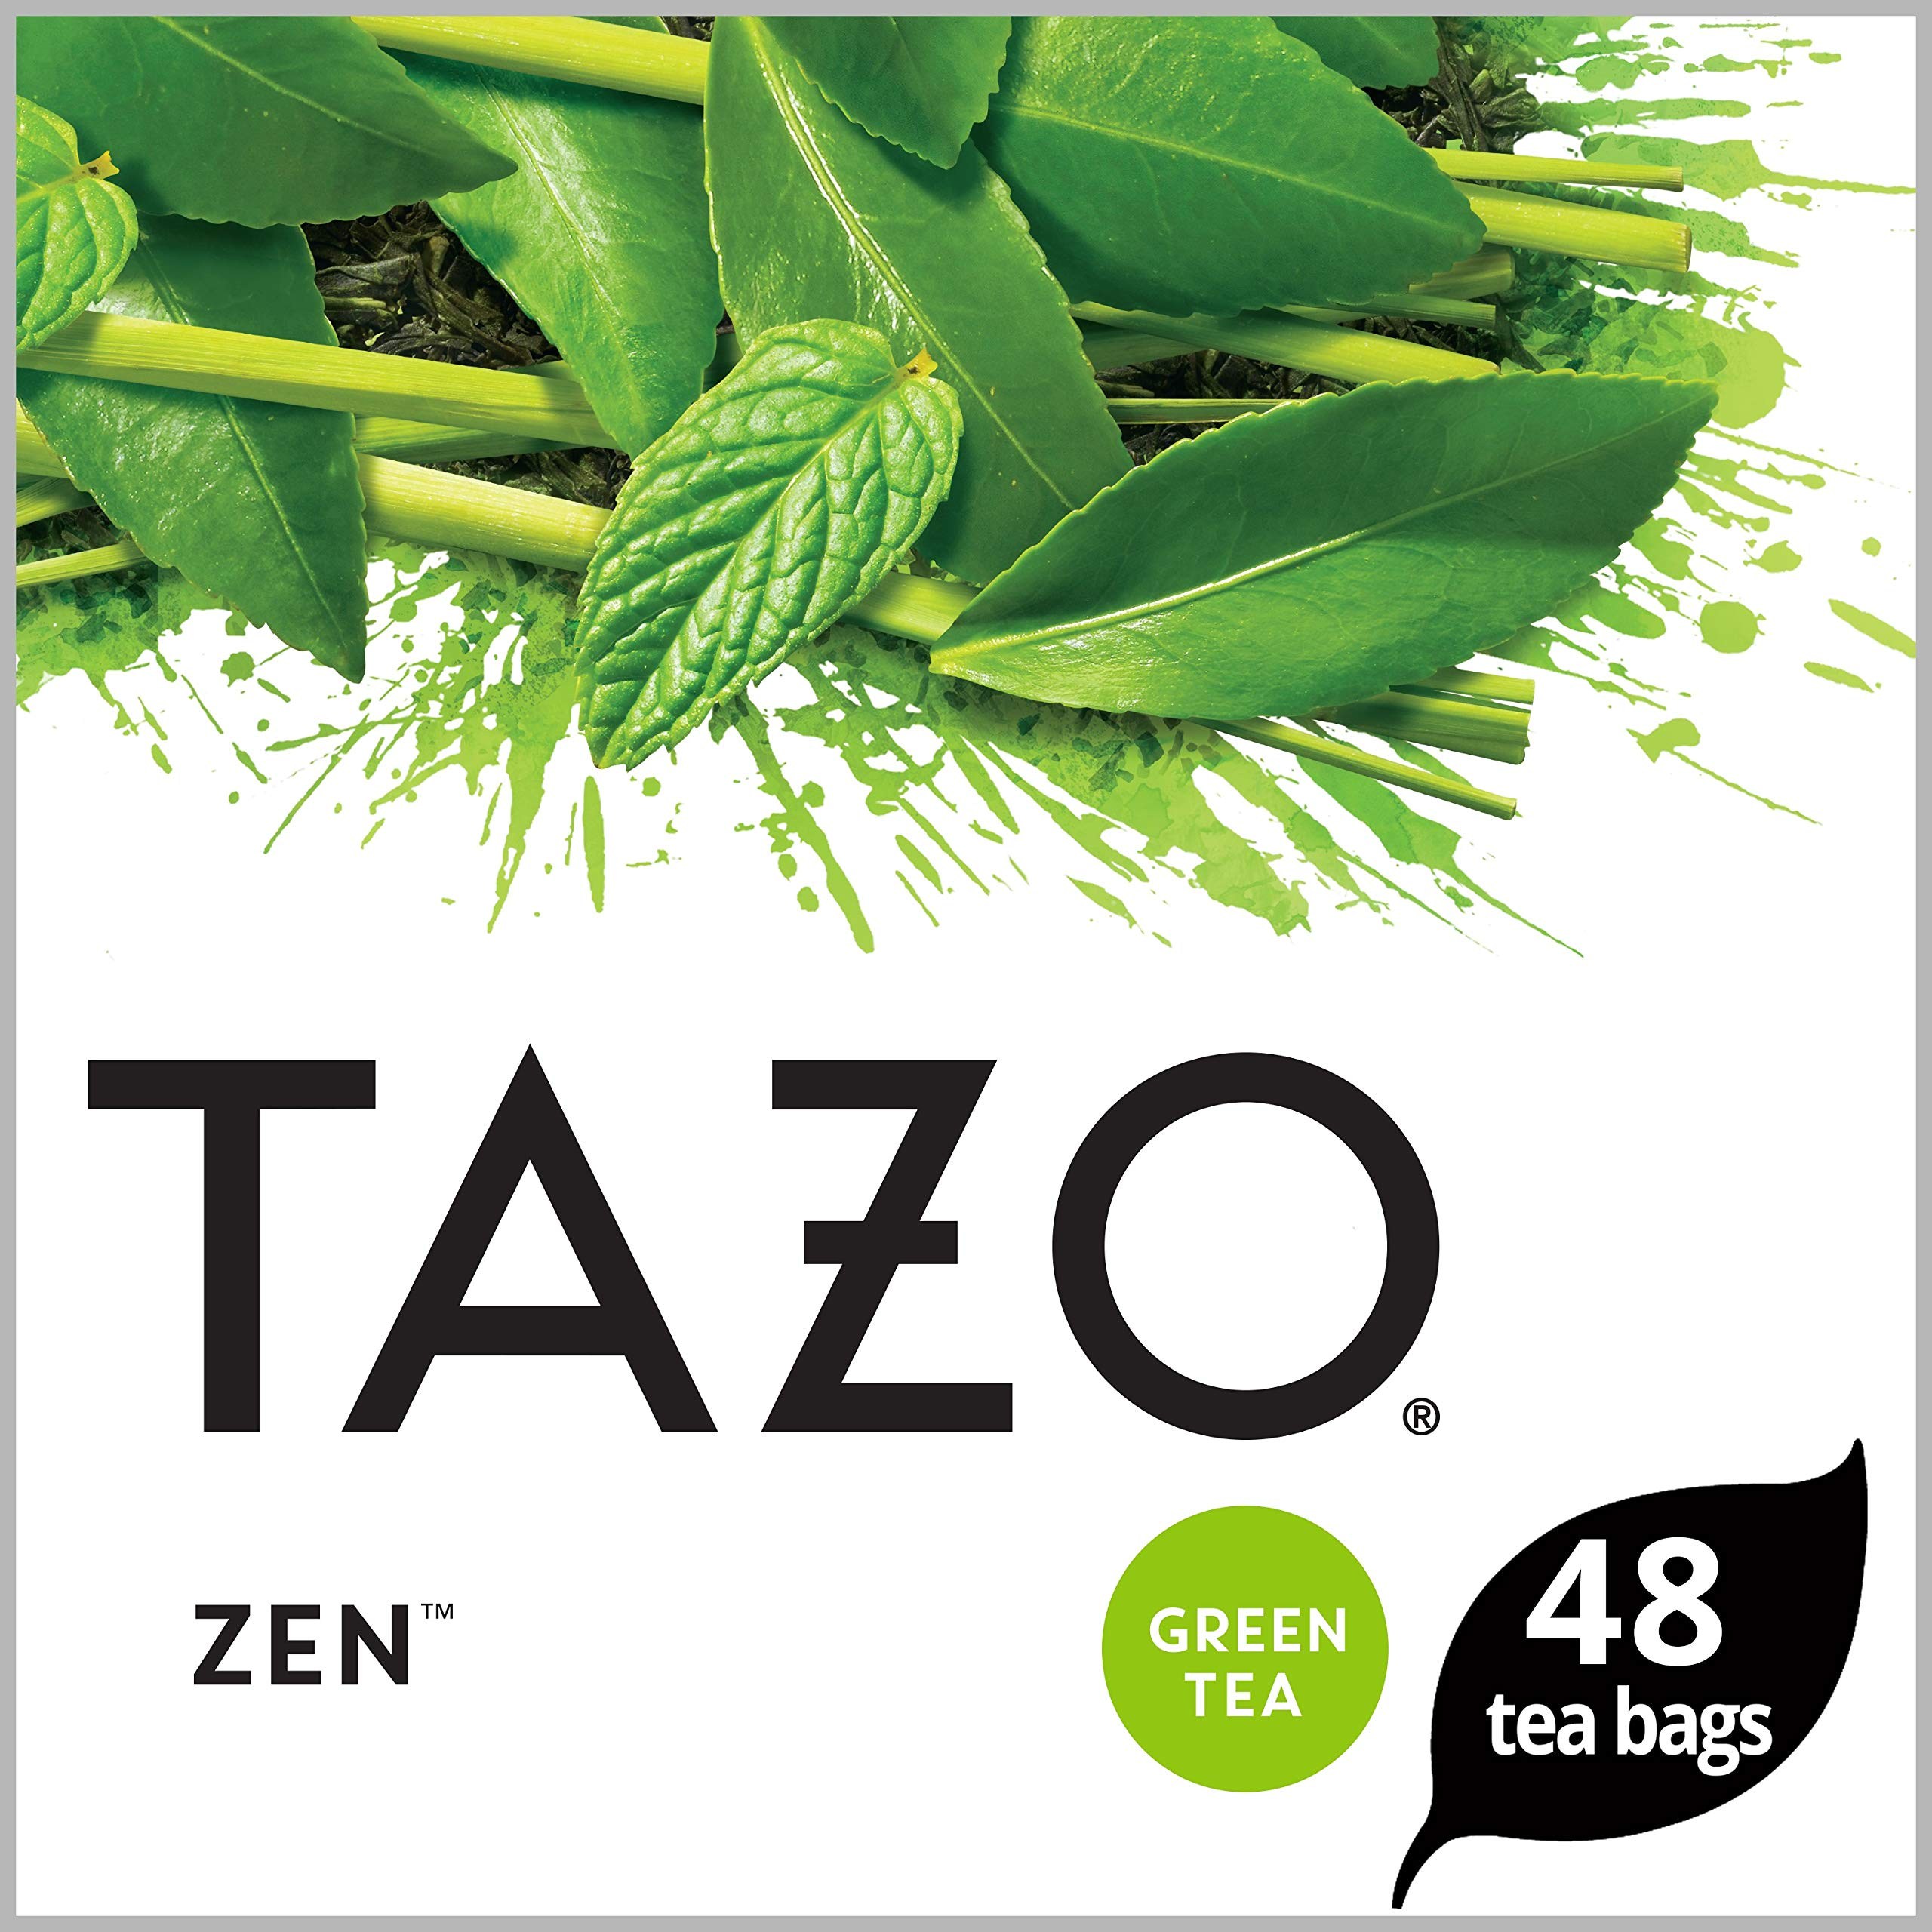 Tazo Awake English Breakfast Black Tea Filterbags 48 ct, Pack of 4 (Packaging may vary) by Tazo